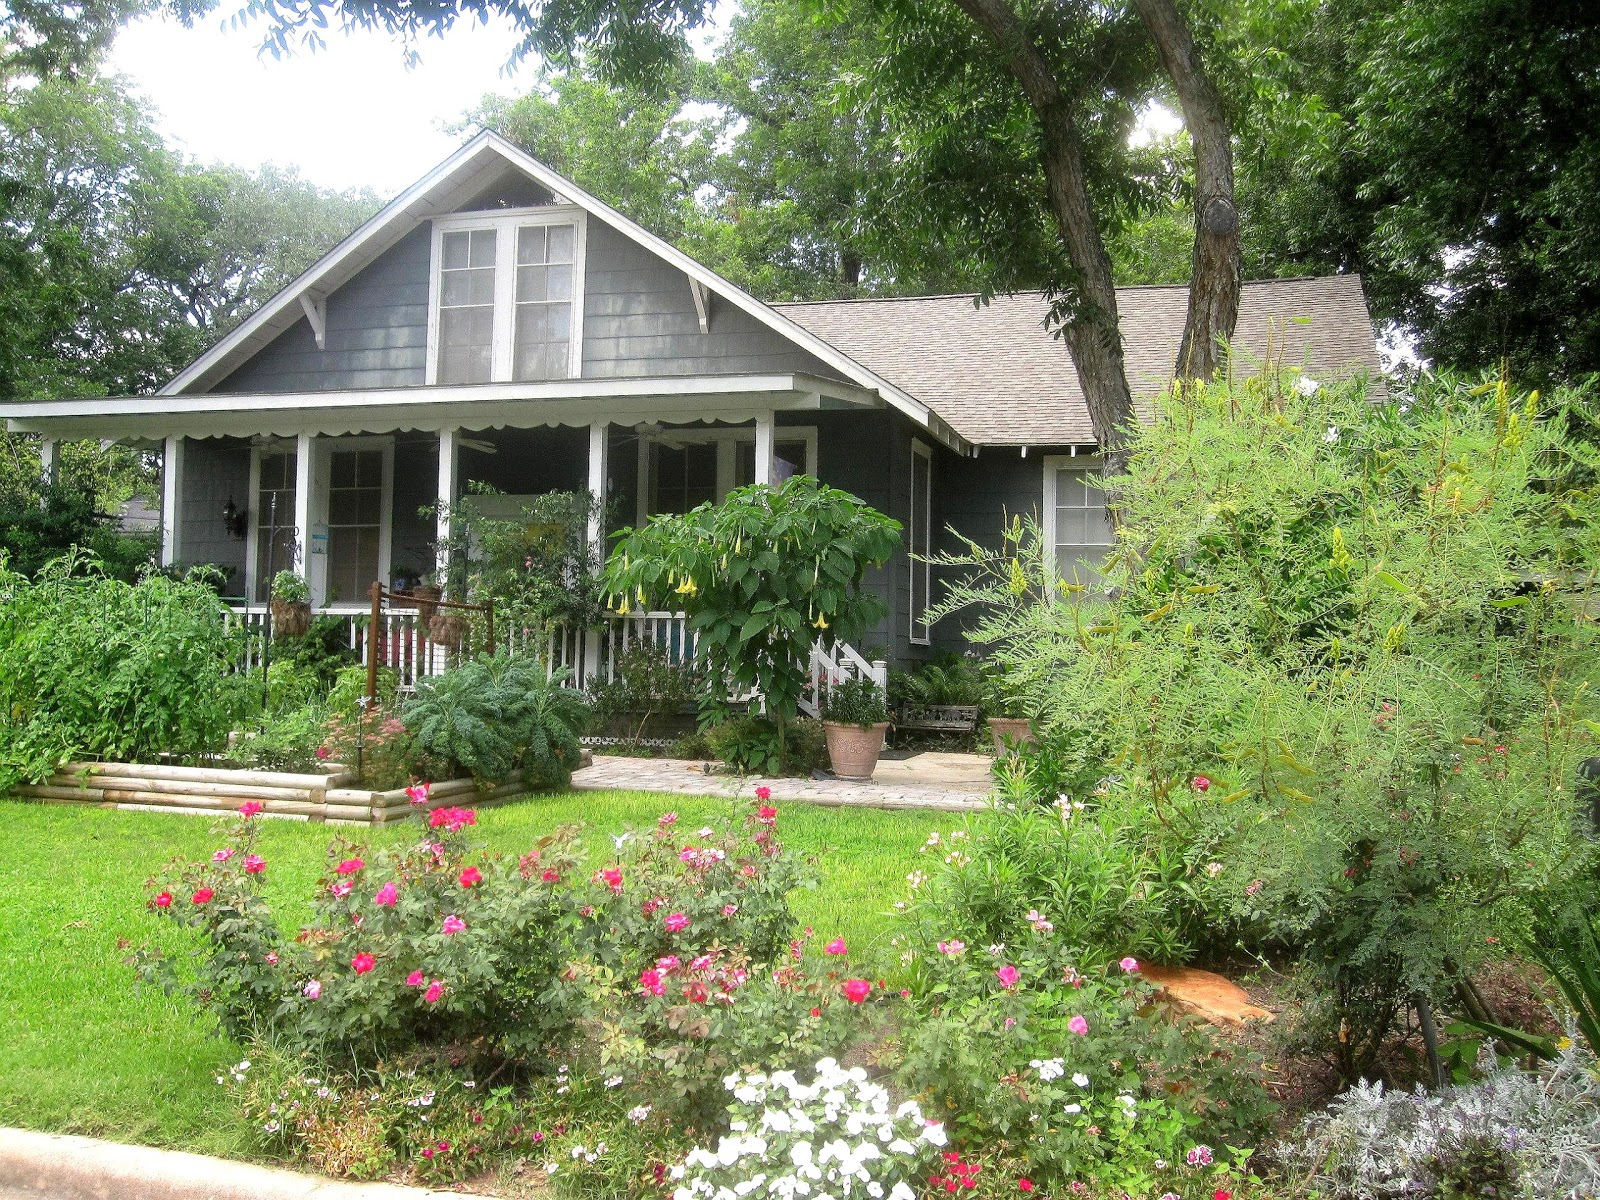 The OtHeR HoUsToN: BUNGALOW FRONT YARD GARDEN IDEAS